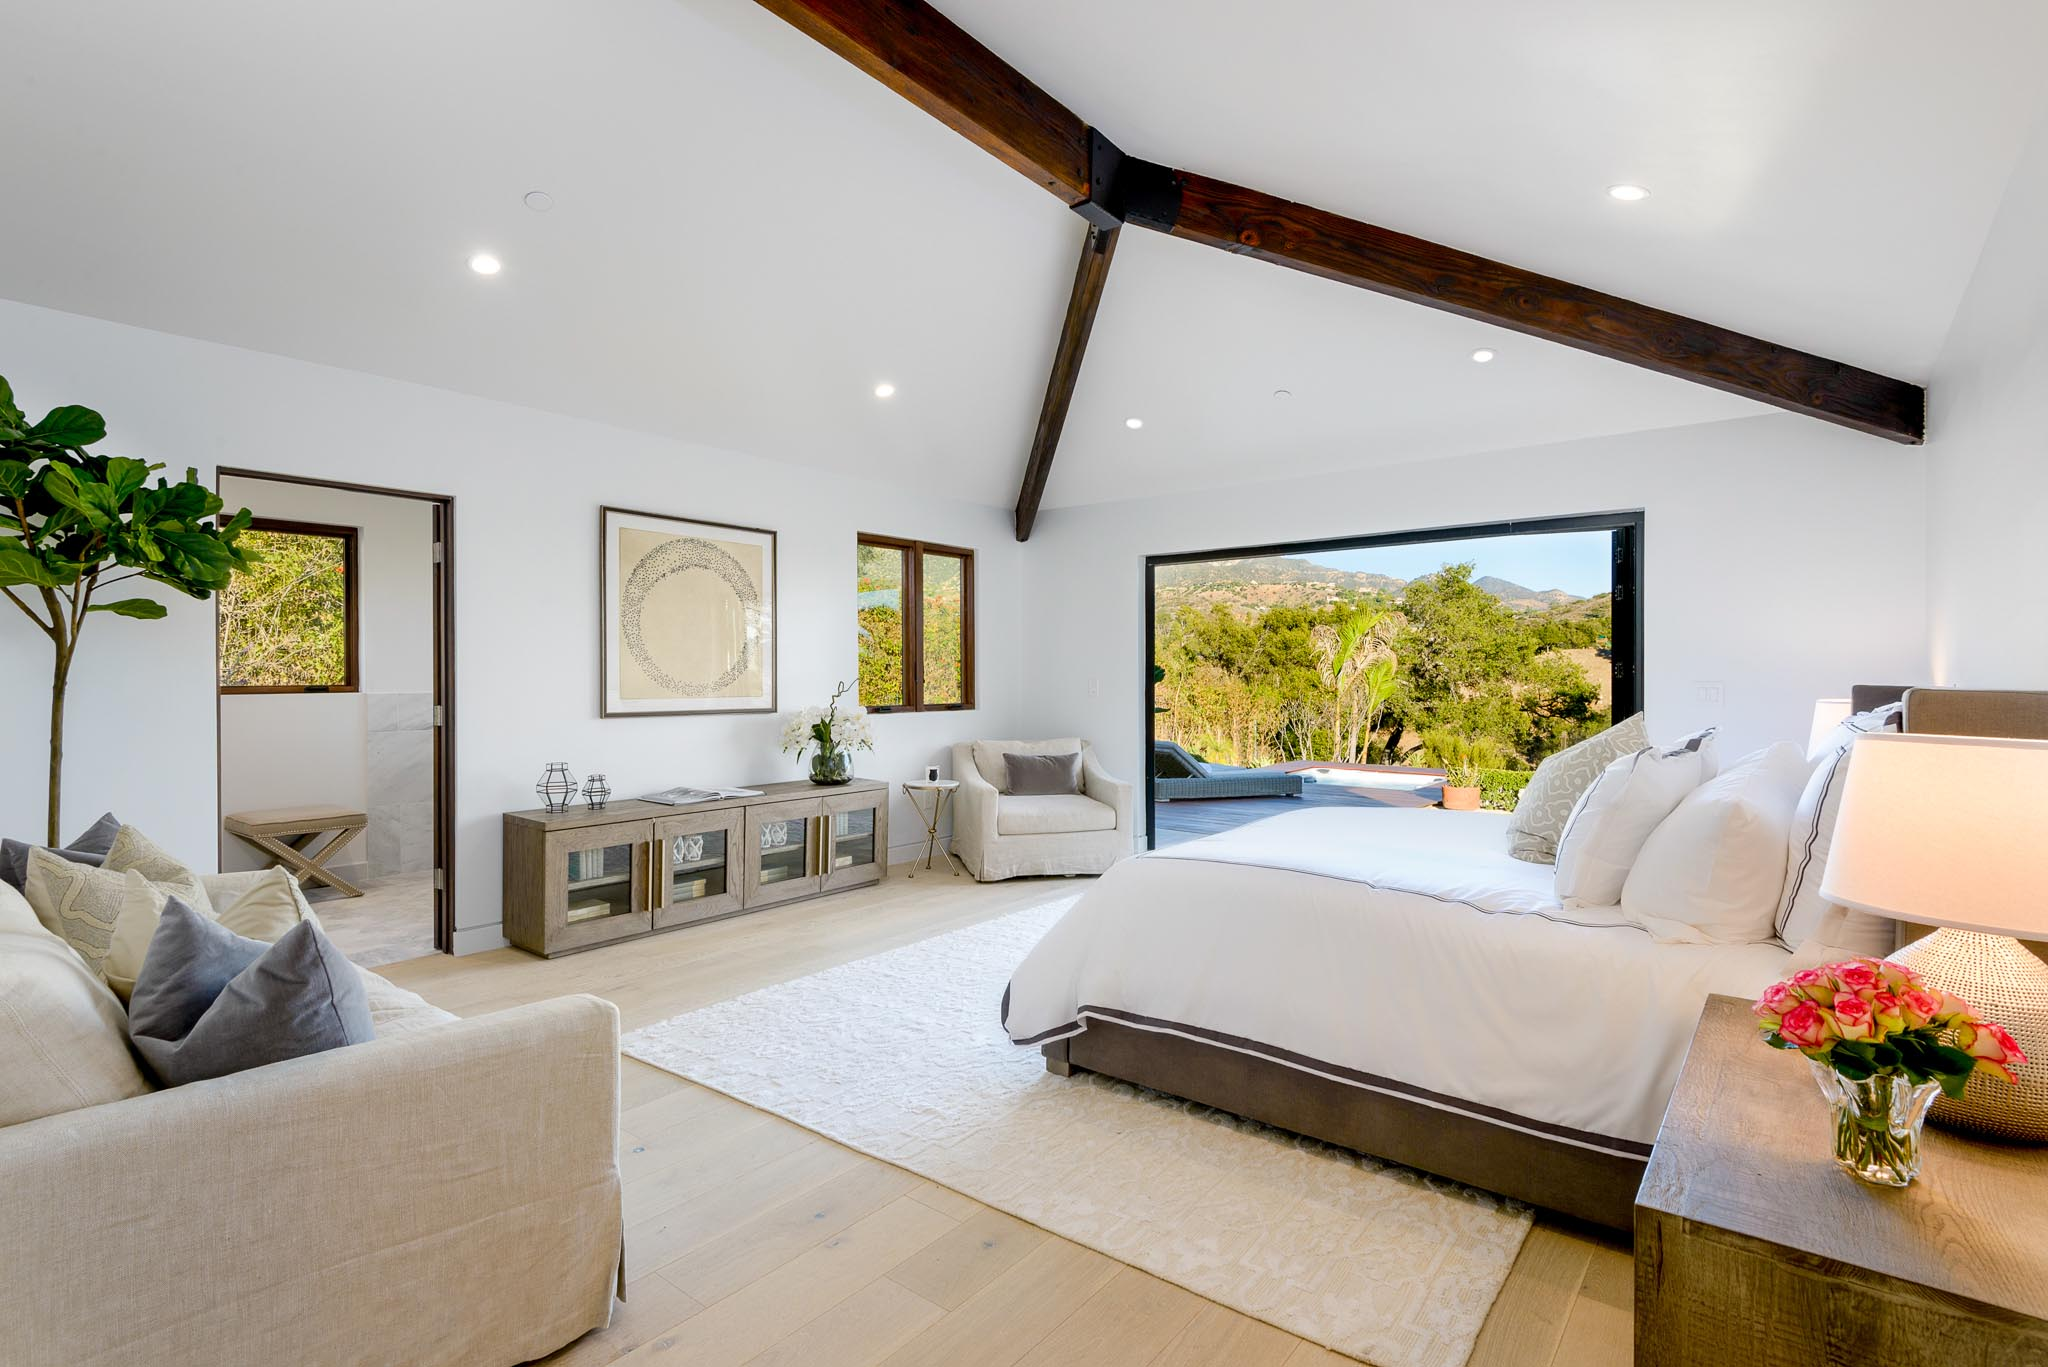 serene retreat in master bedroom in contemporary ranch remodel with NanaWall FoldFlat system